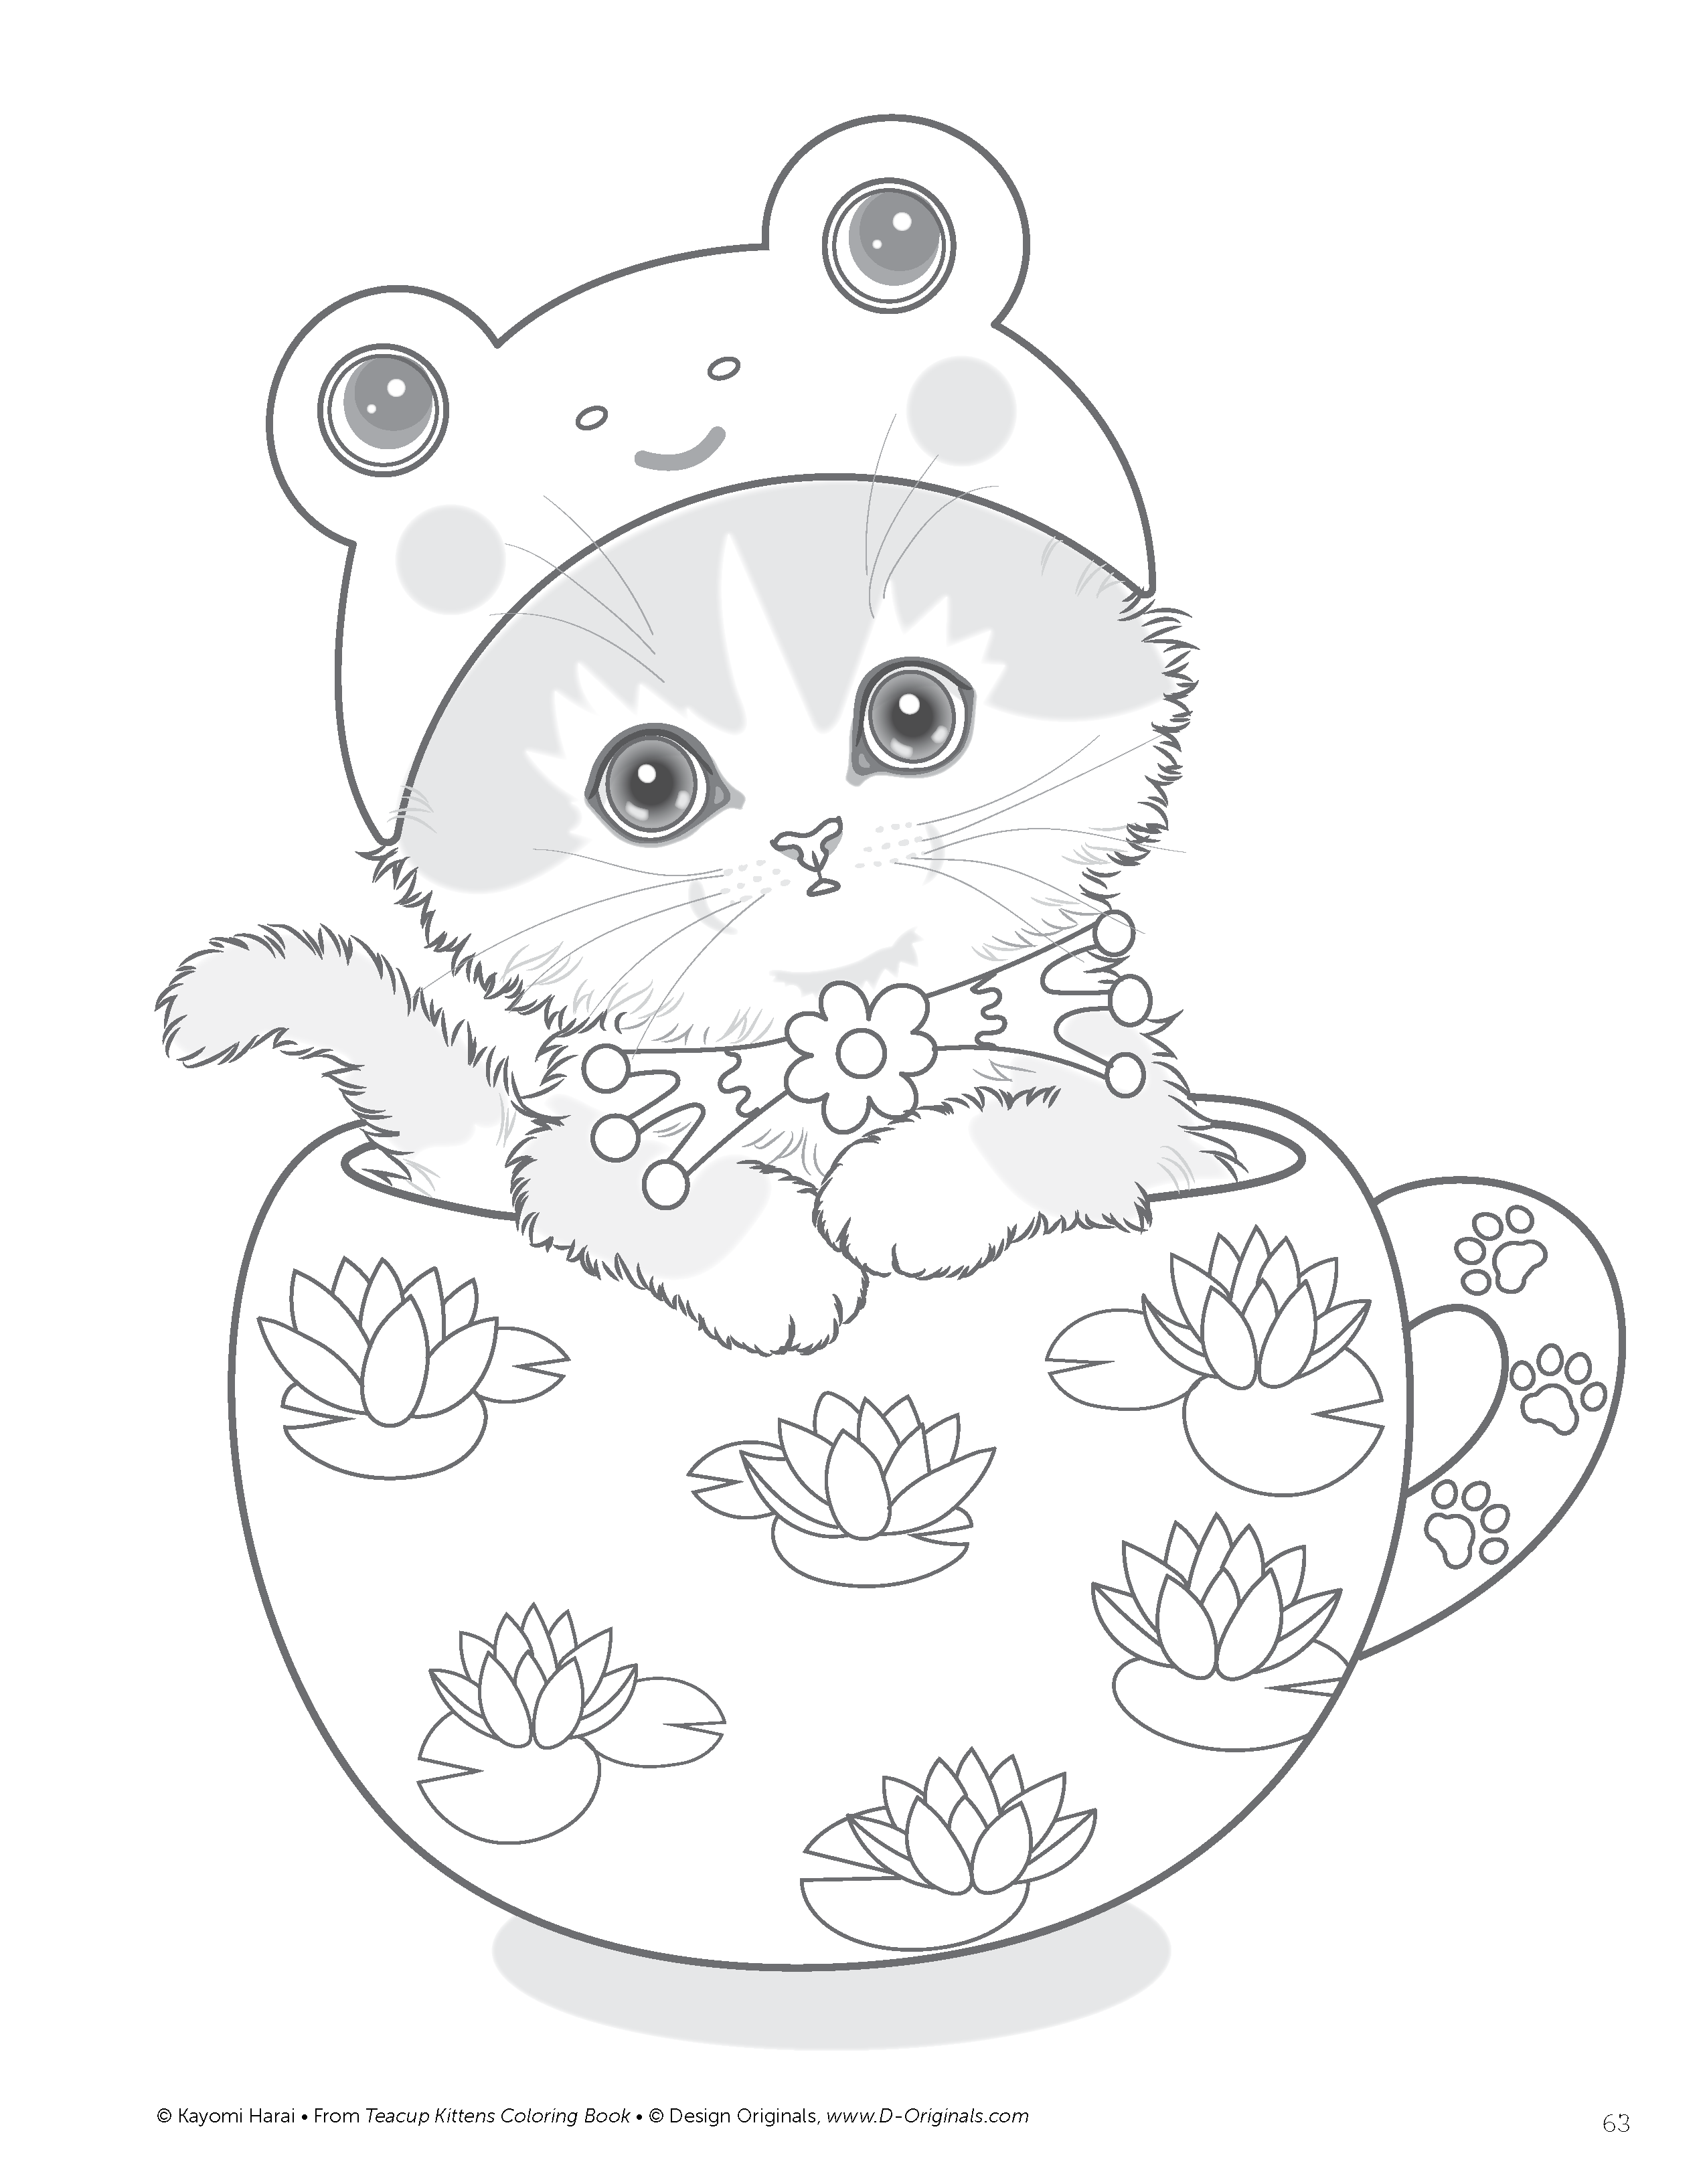 cat coloring book pages amazoncom teacup kittens coloring book design originals book cat pages coloring